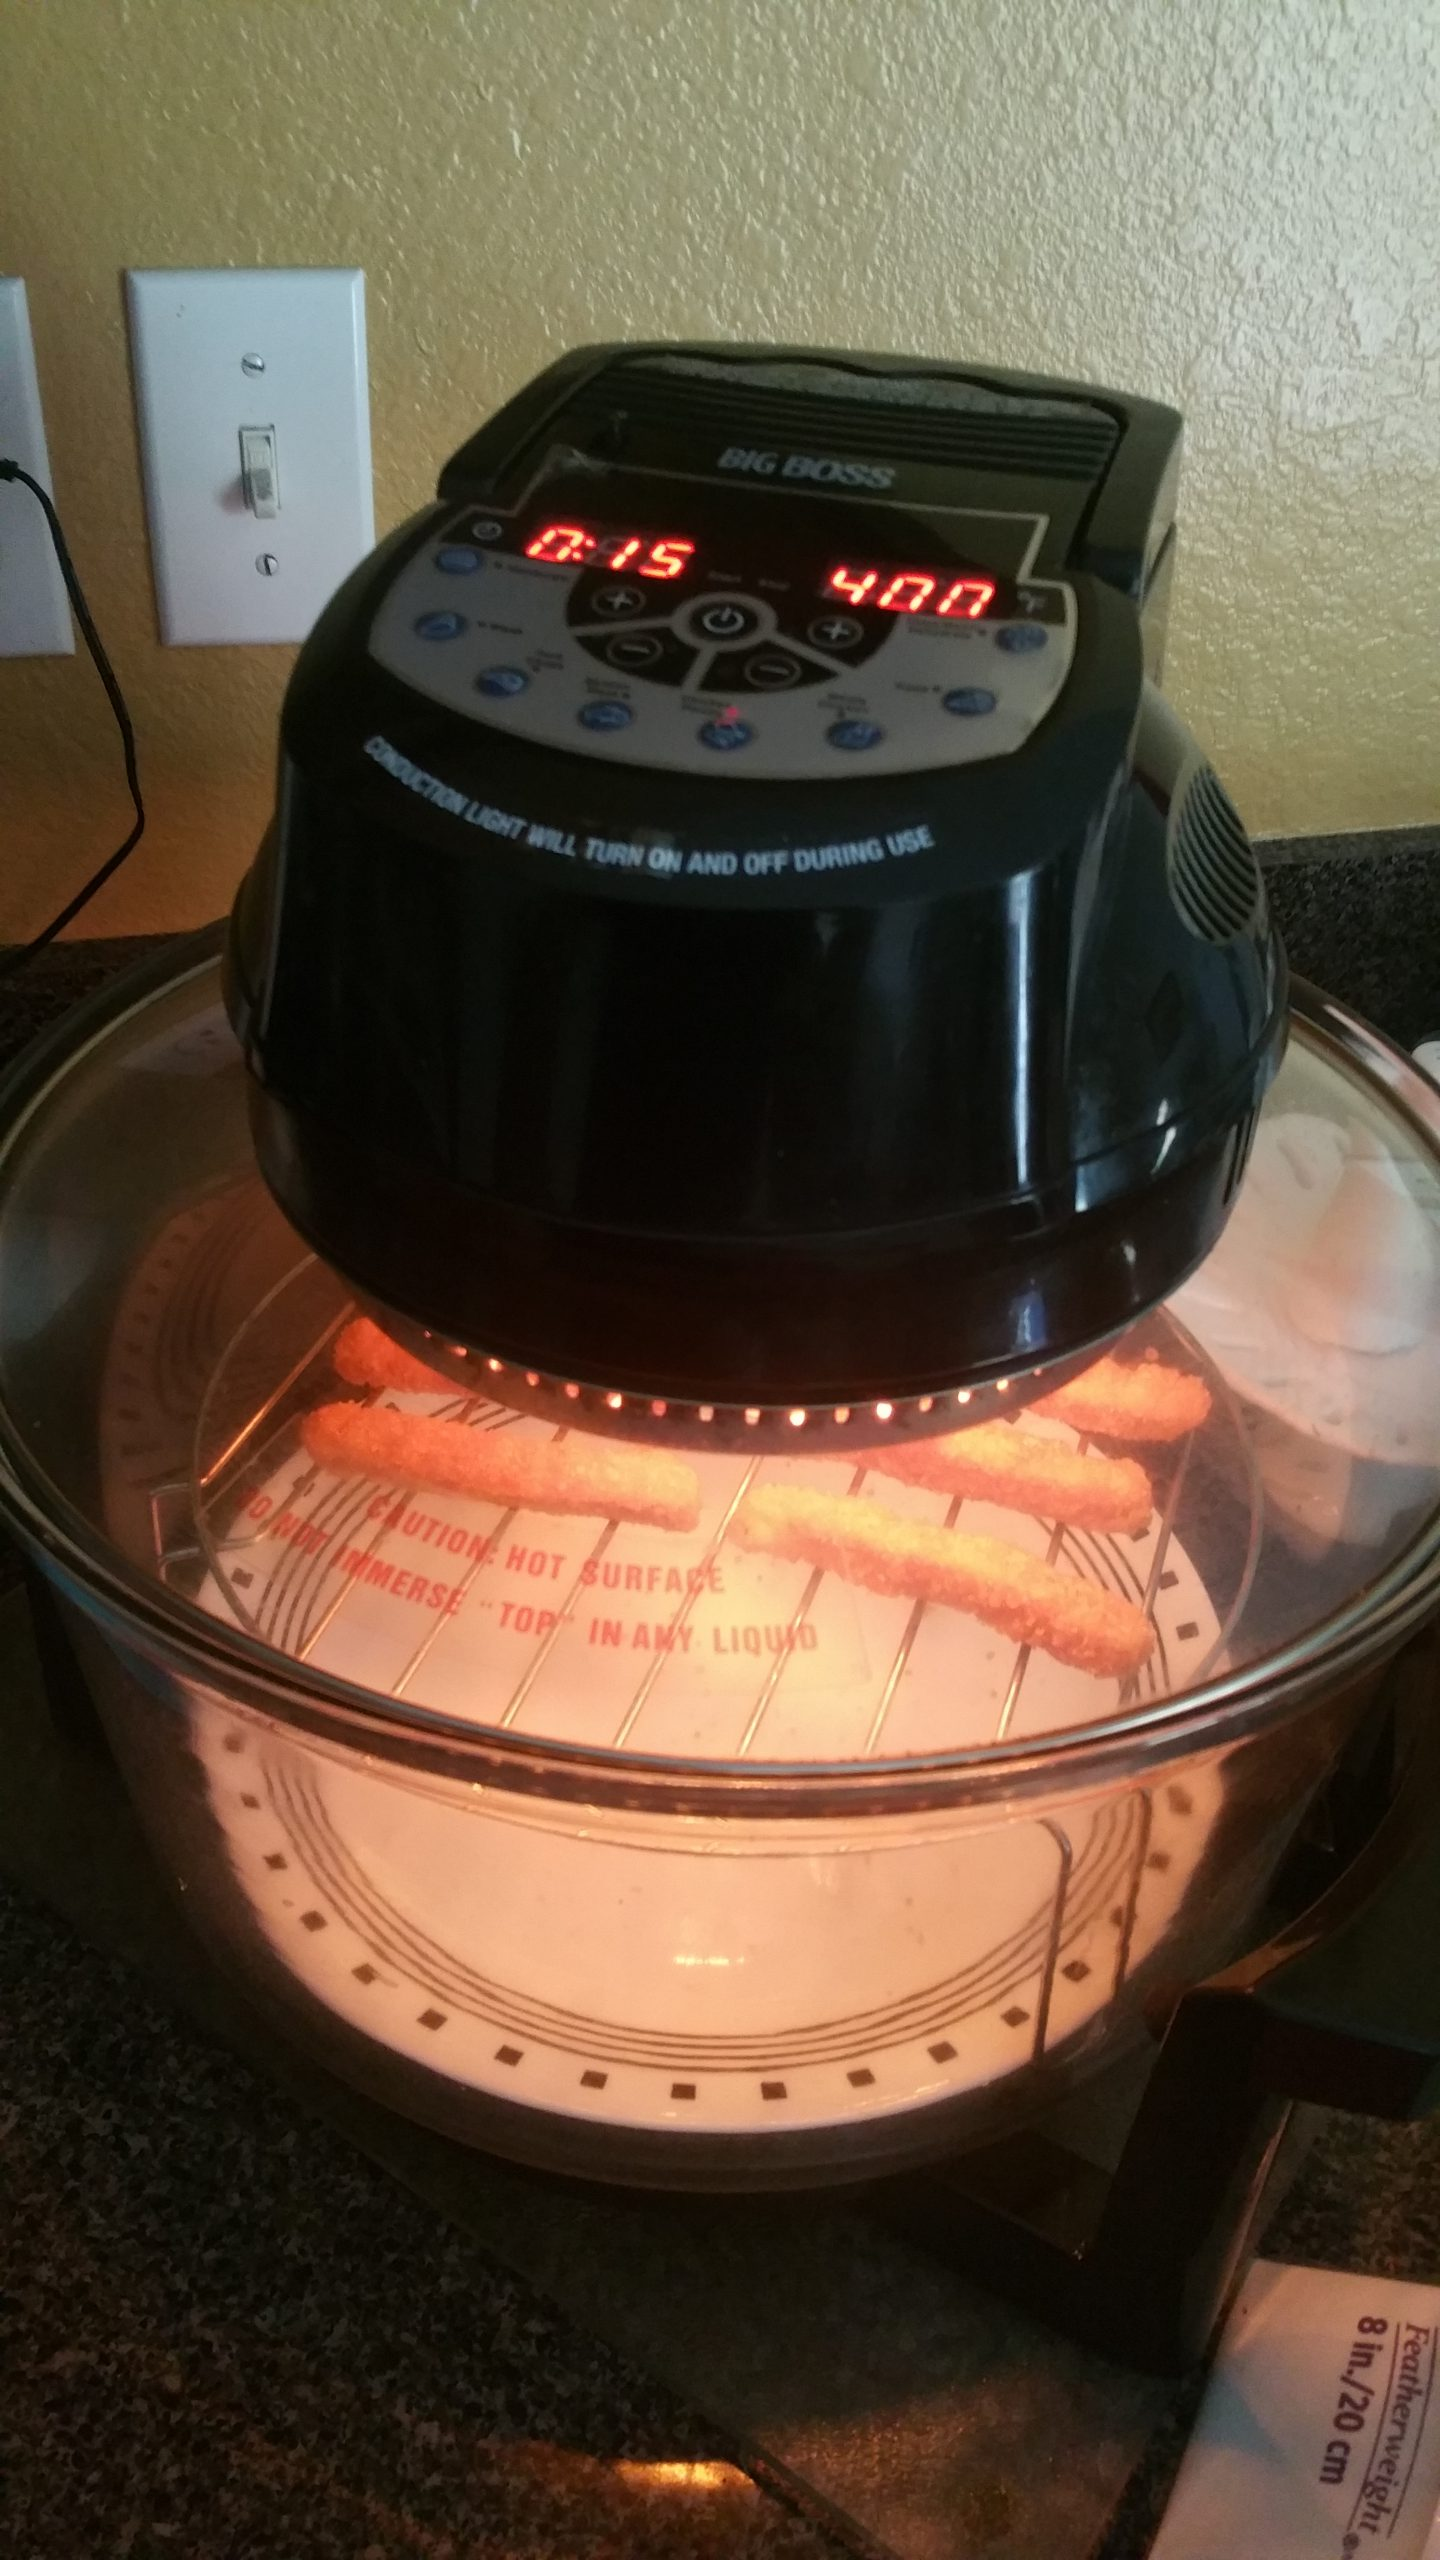 Cooking Chicken Fries on a Convection Oven - 2